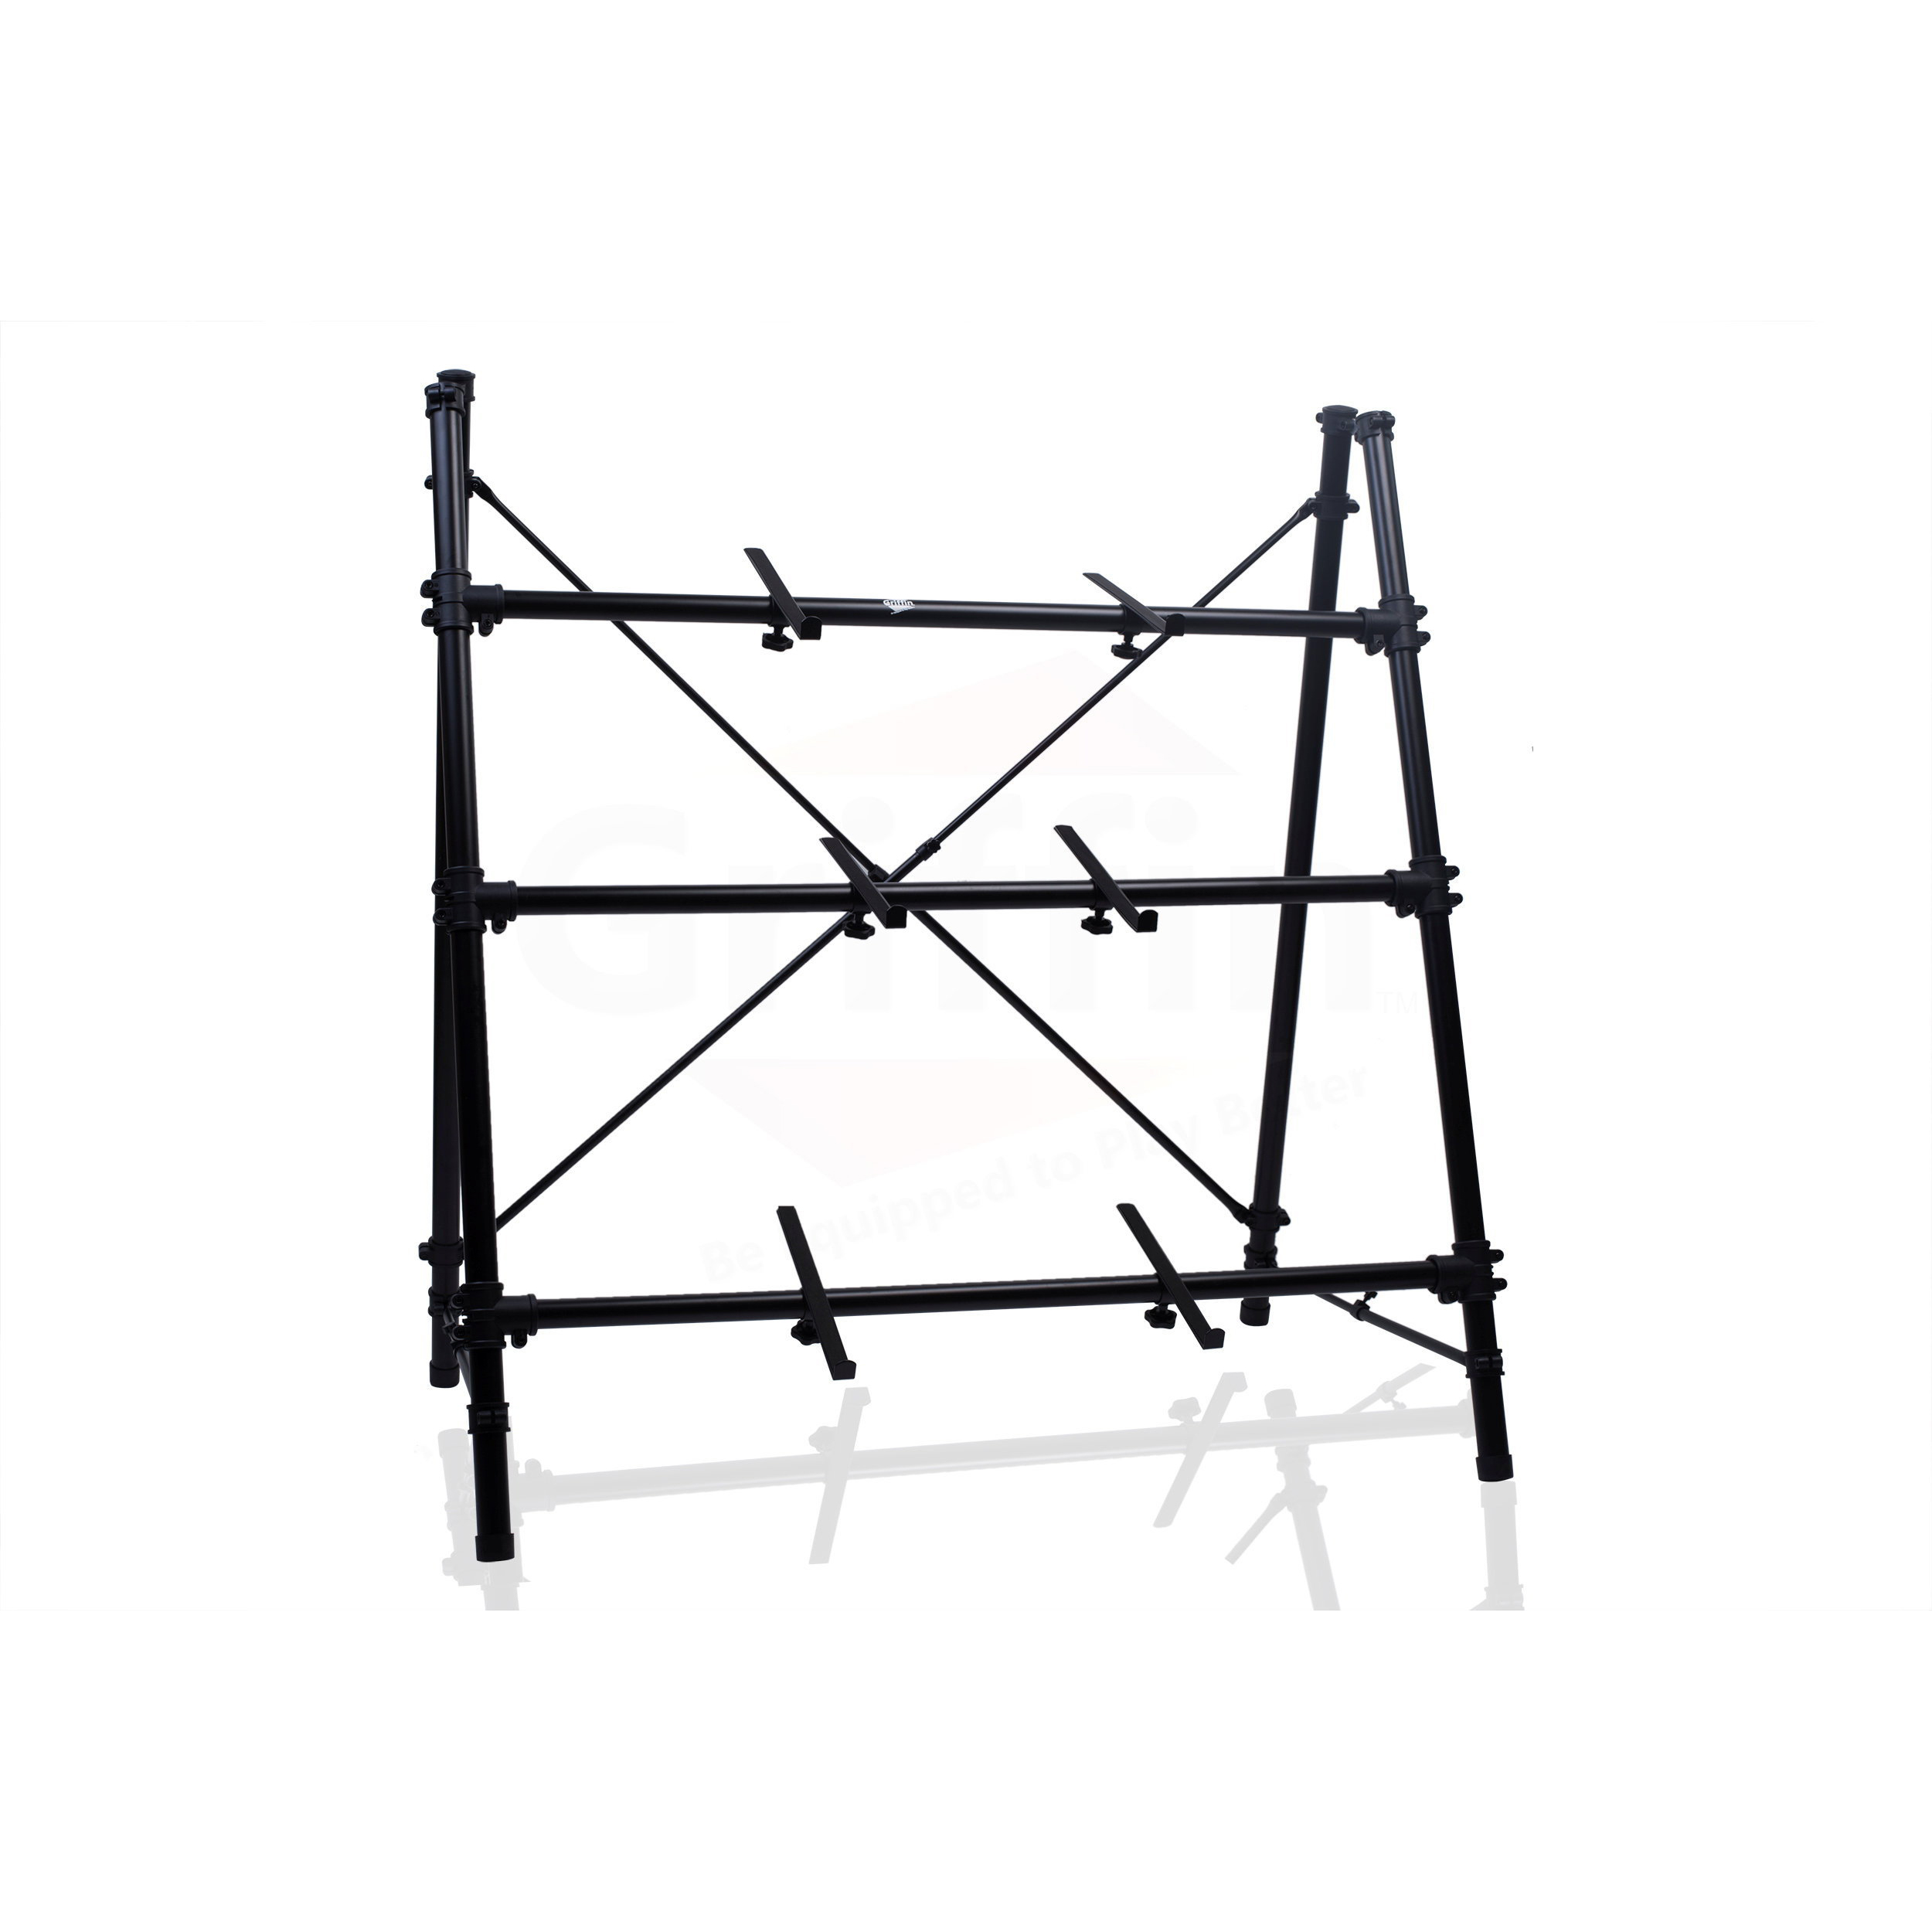 Triple Keyboard Stand 3 Tier A Frame Holder Studio Mount